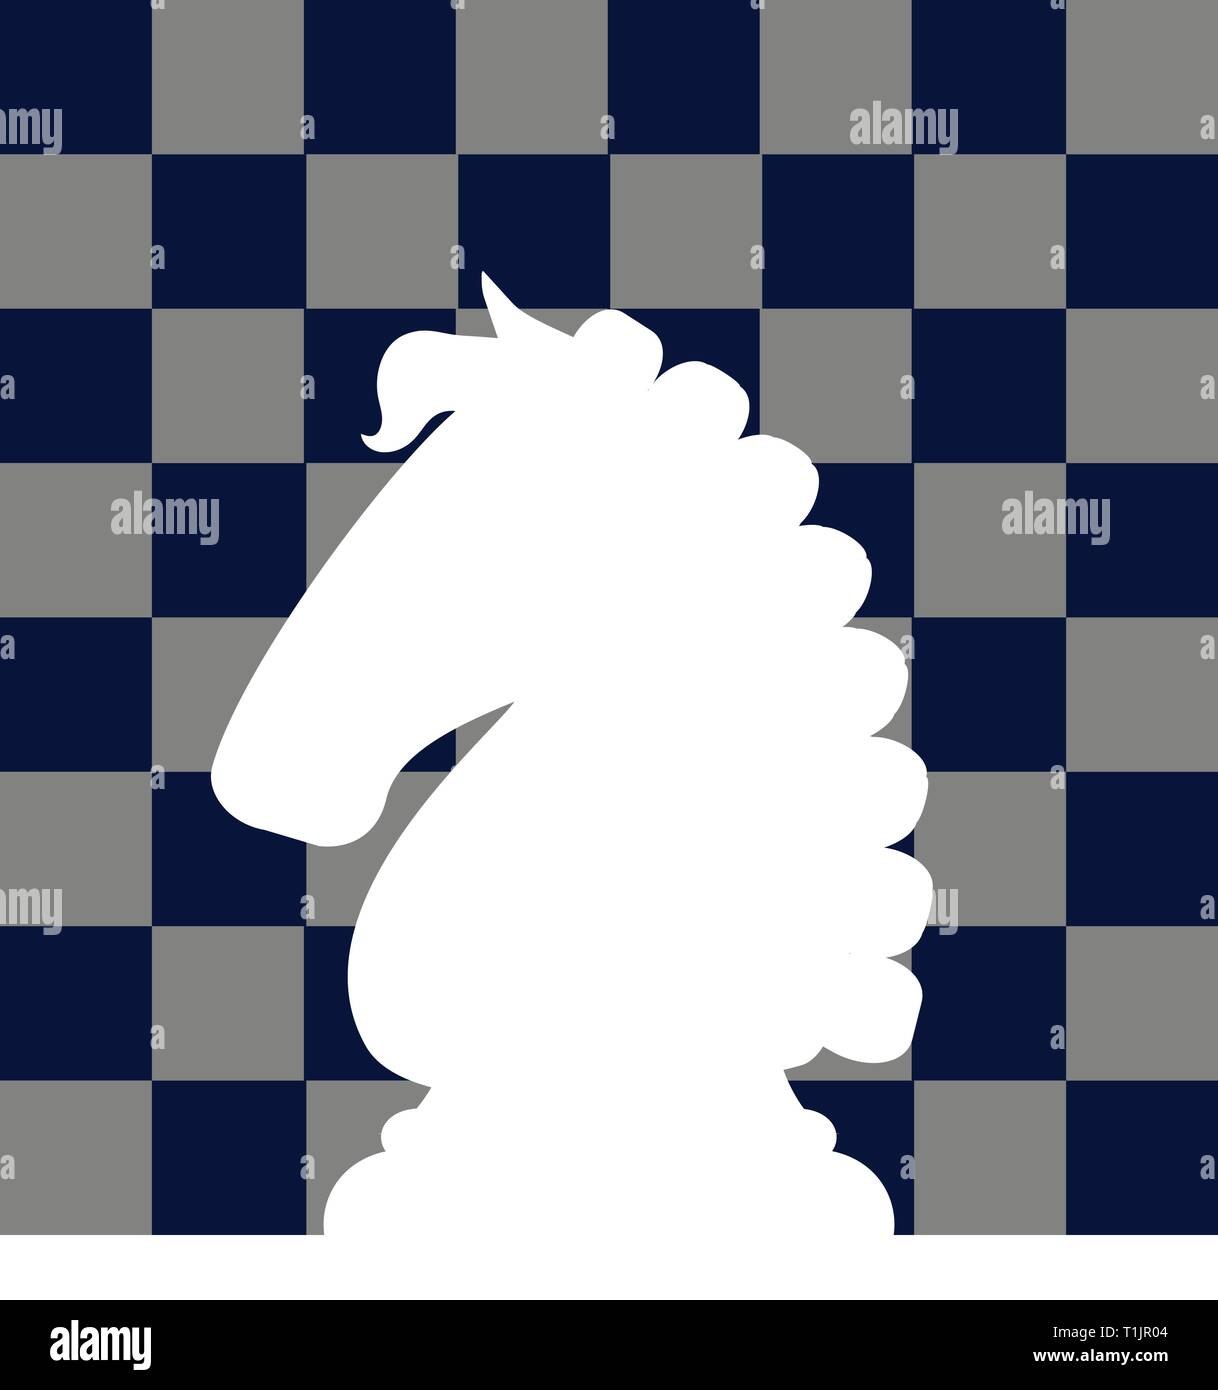 White knight chess piece reversed out of chess board background